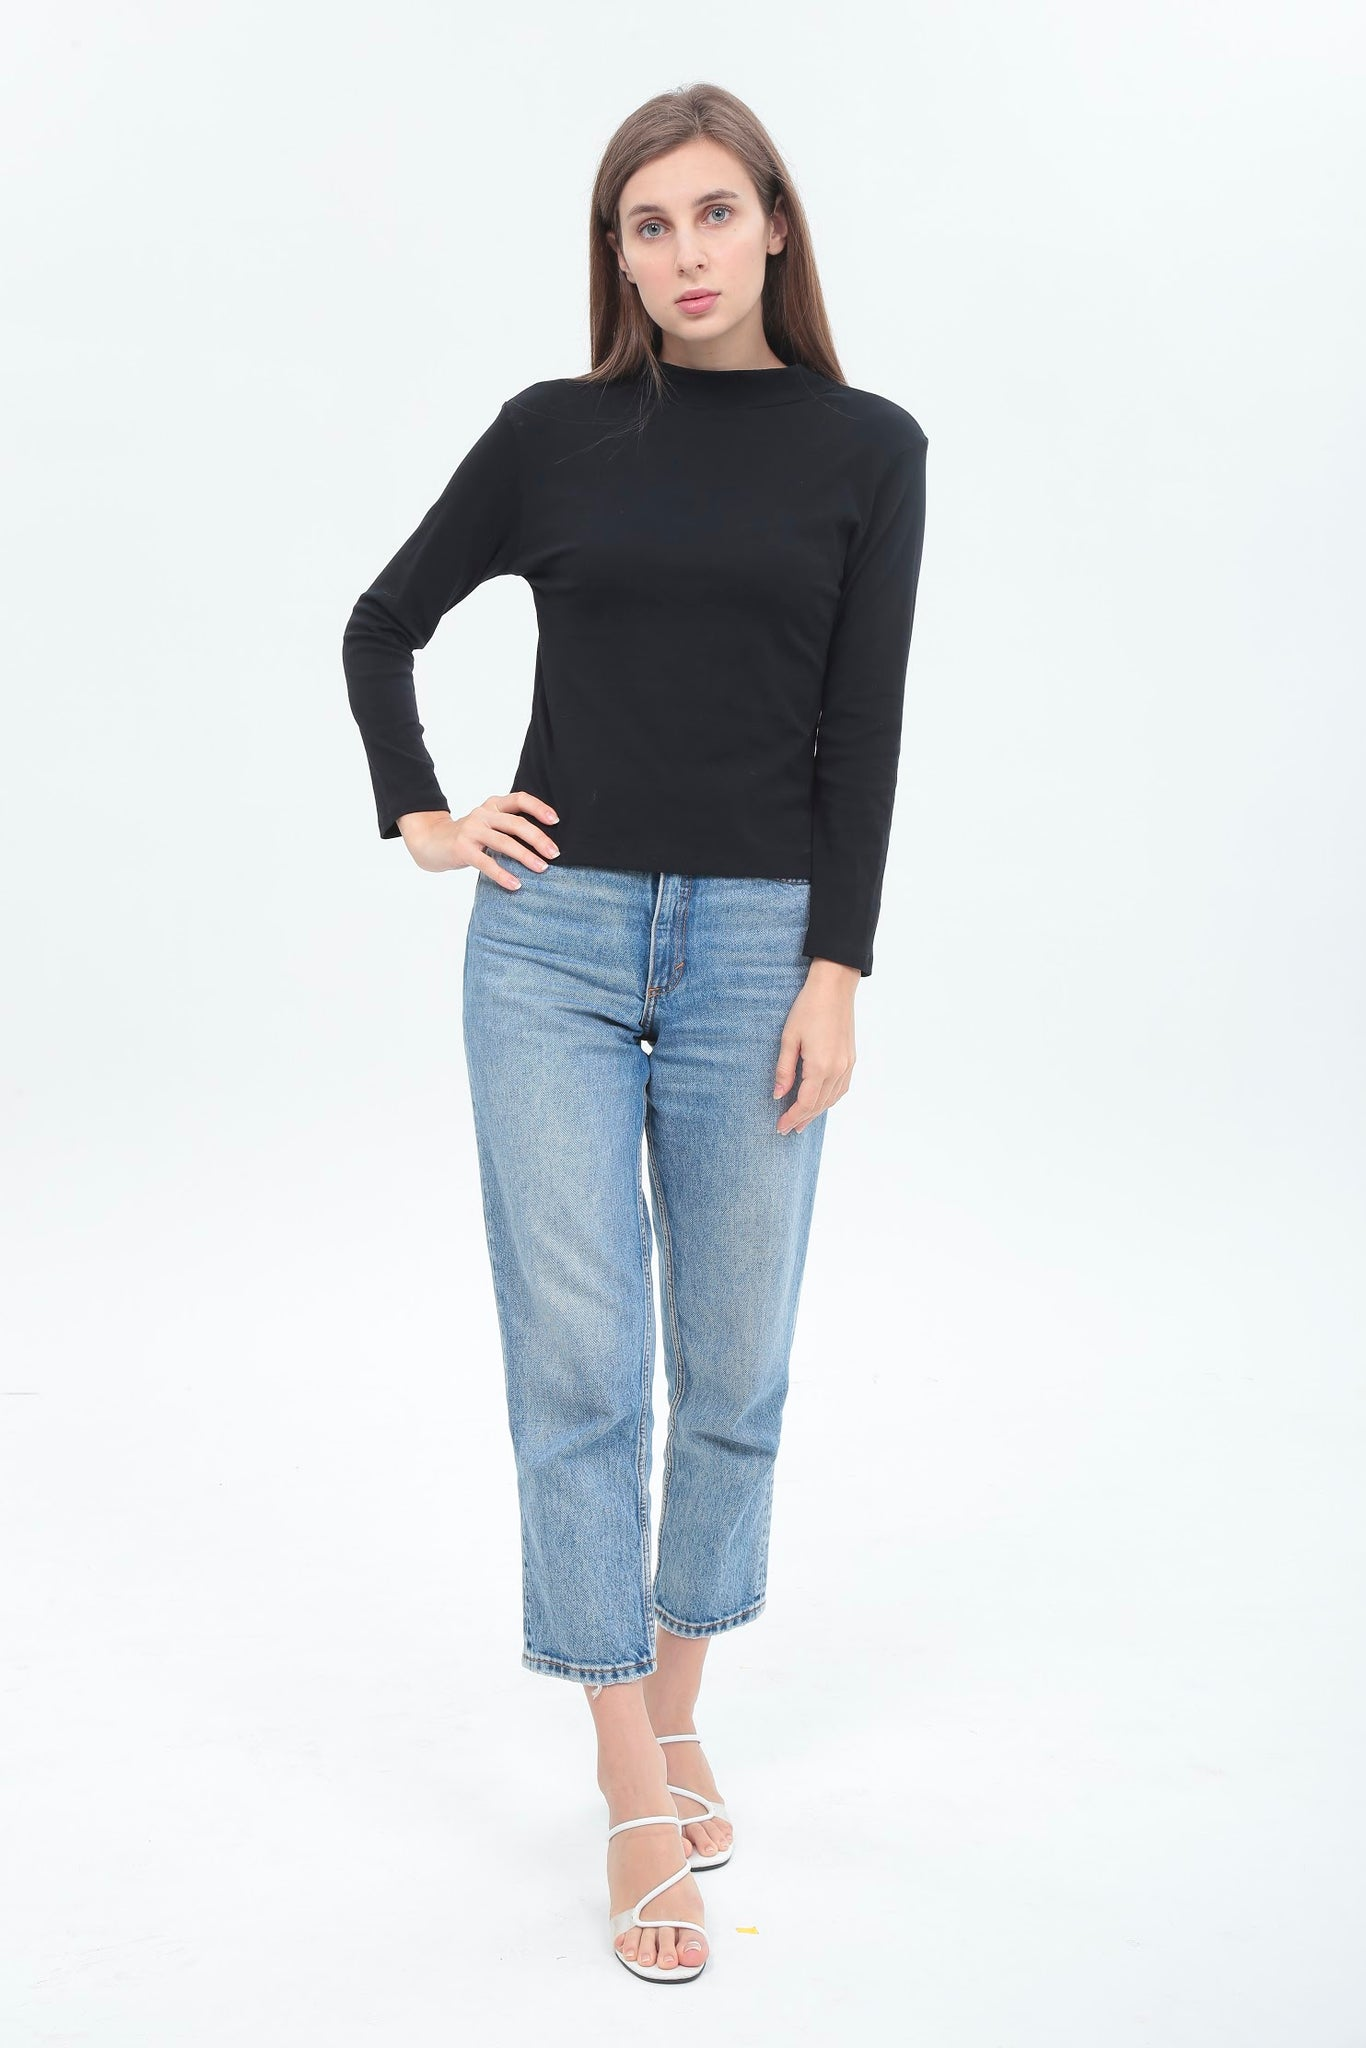 Basic Turtle Neck Long Sleeve Top in Black